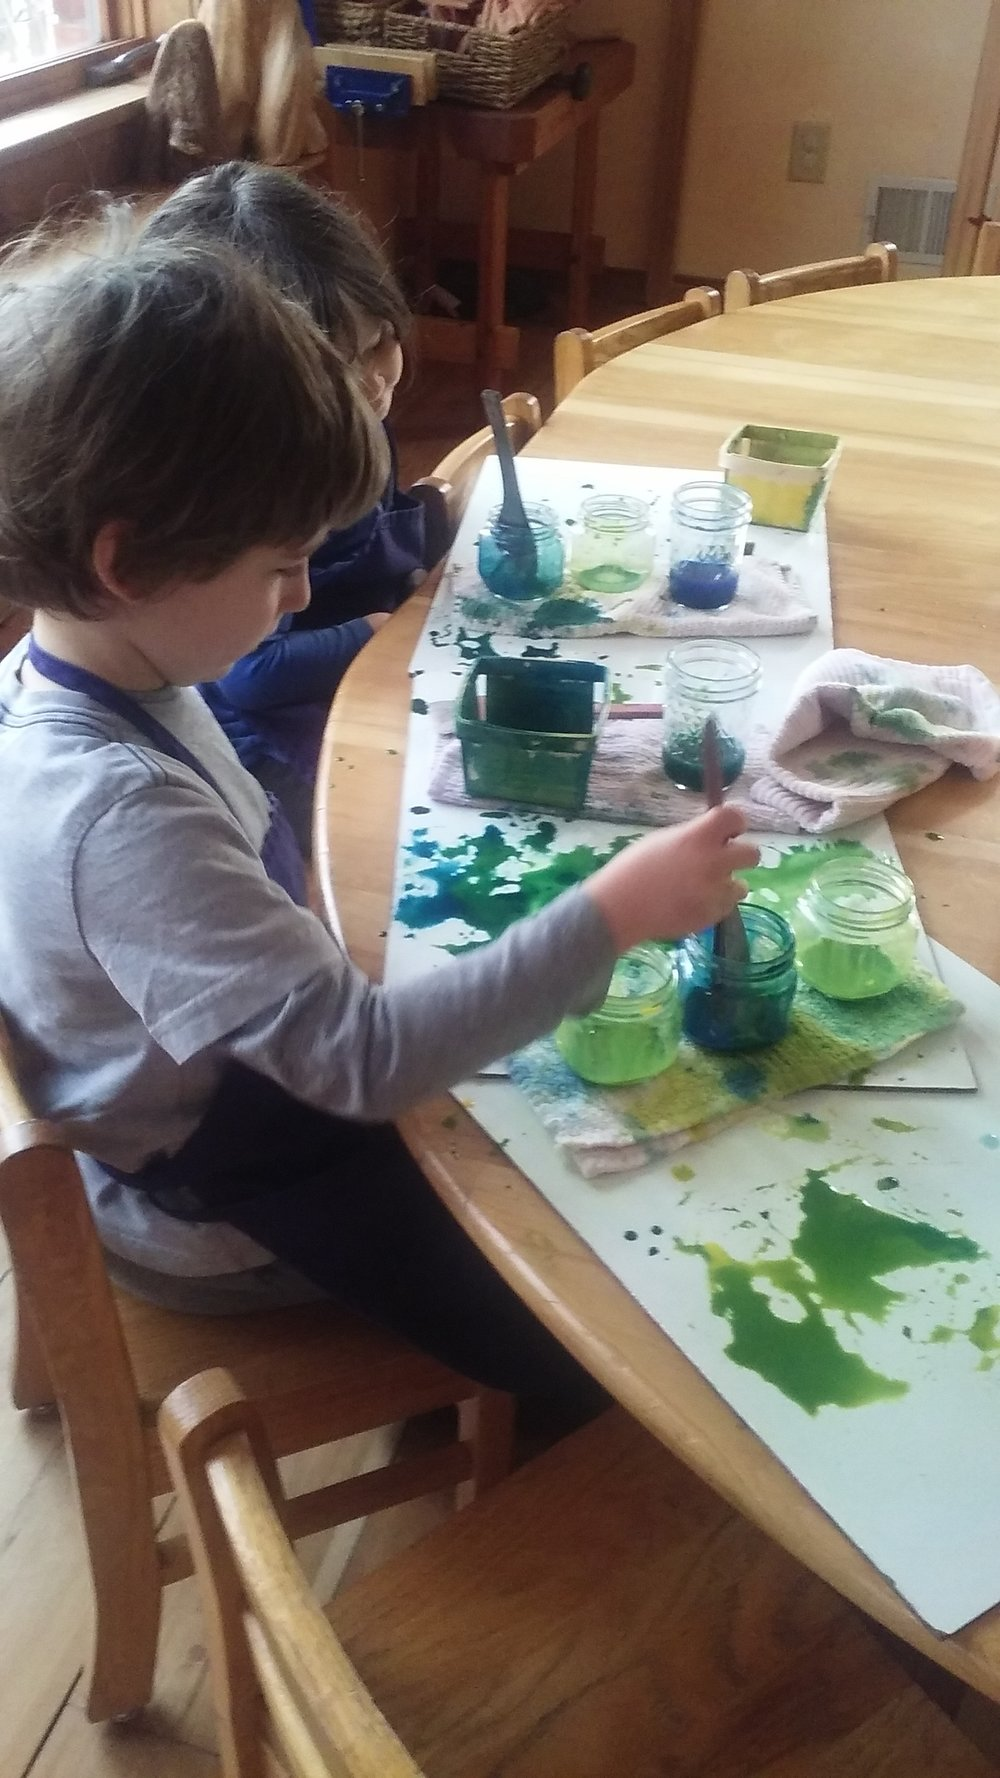 Artistic activities develop the senses and fine motor skills.